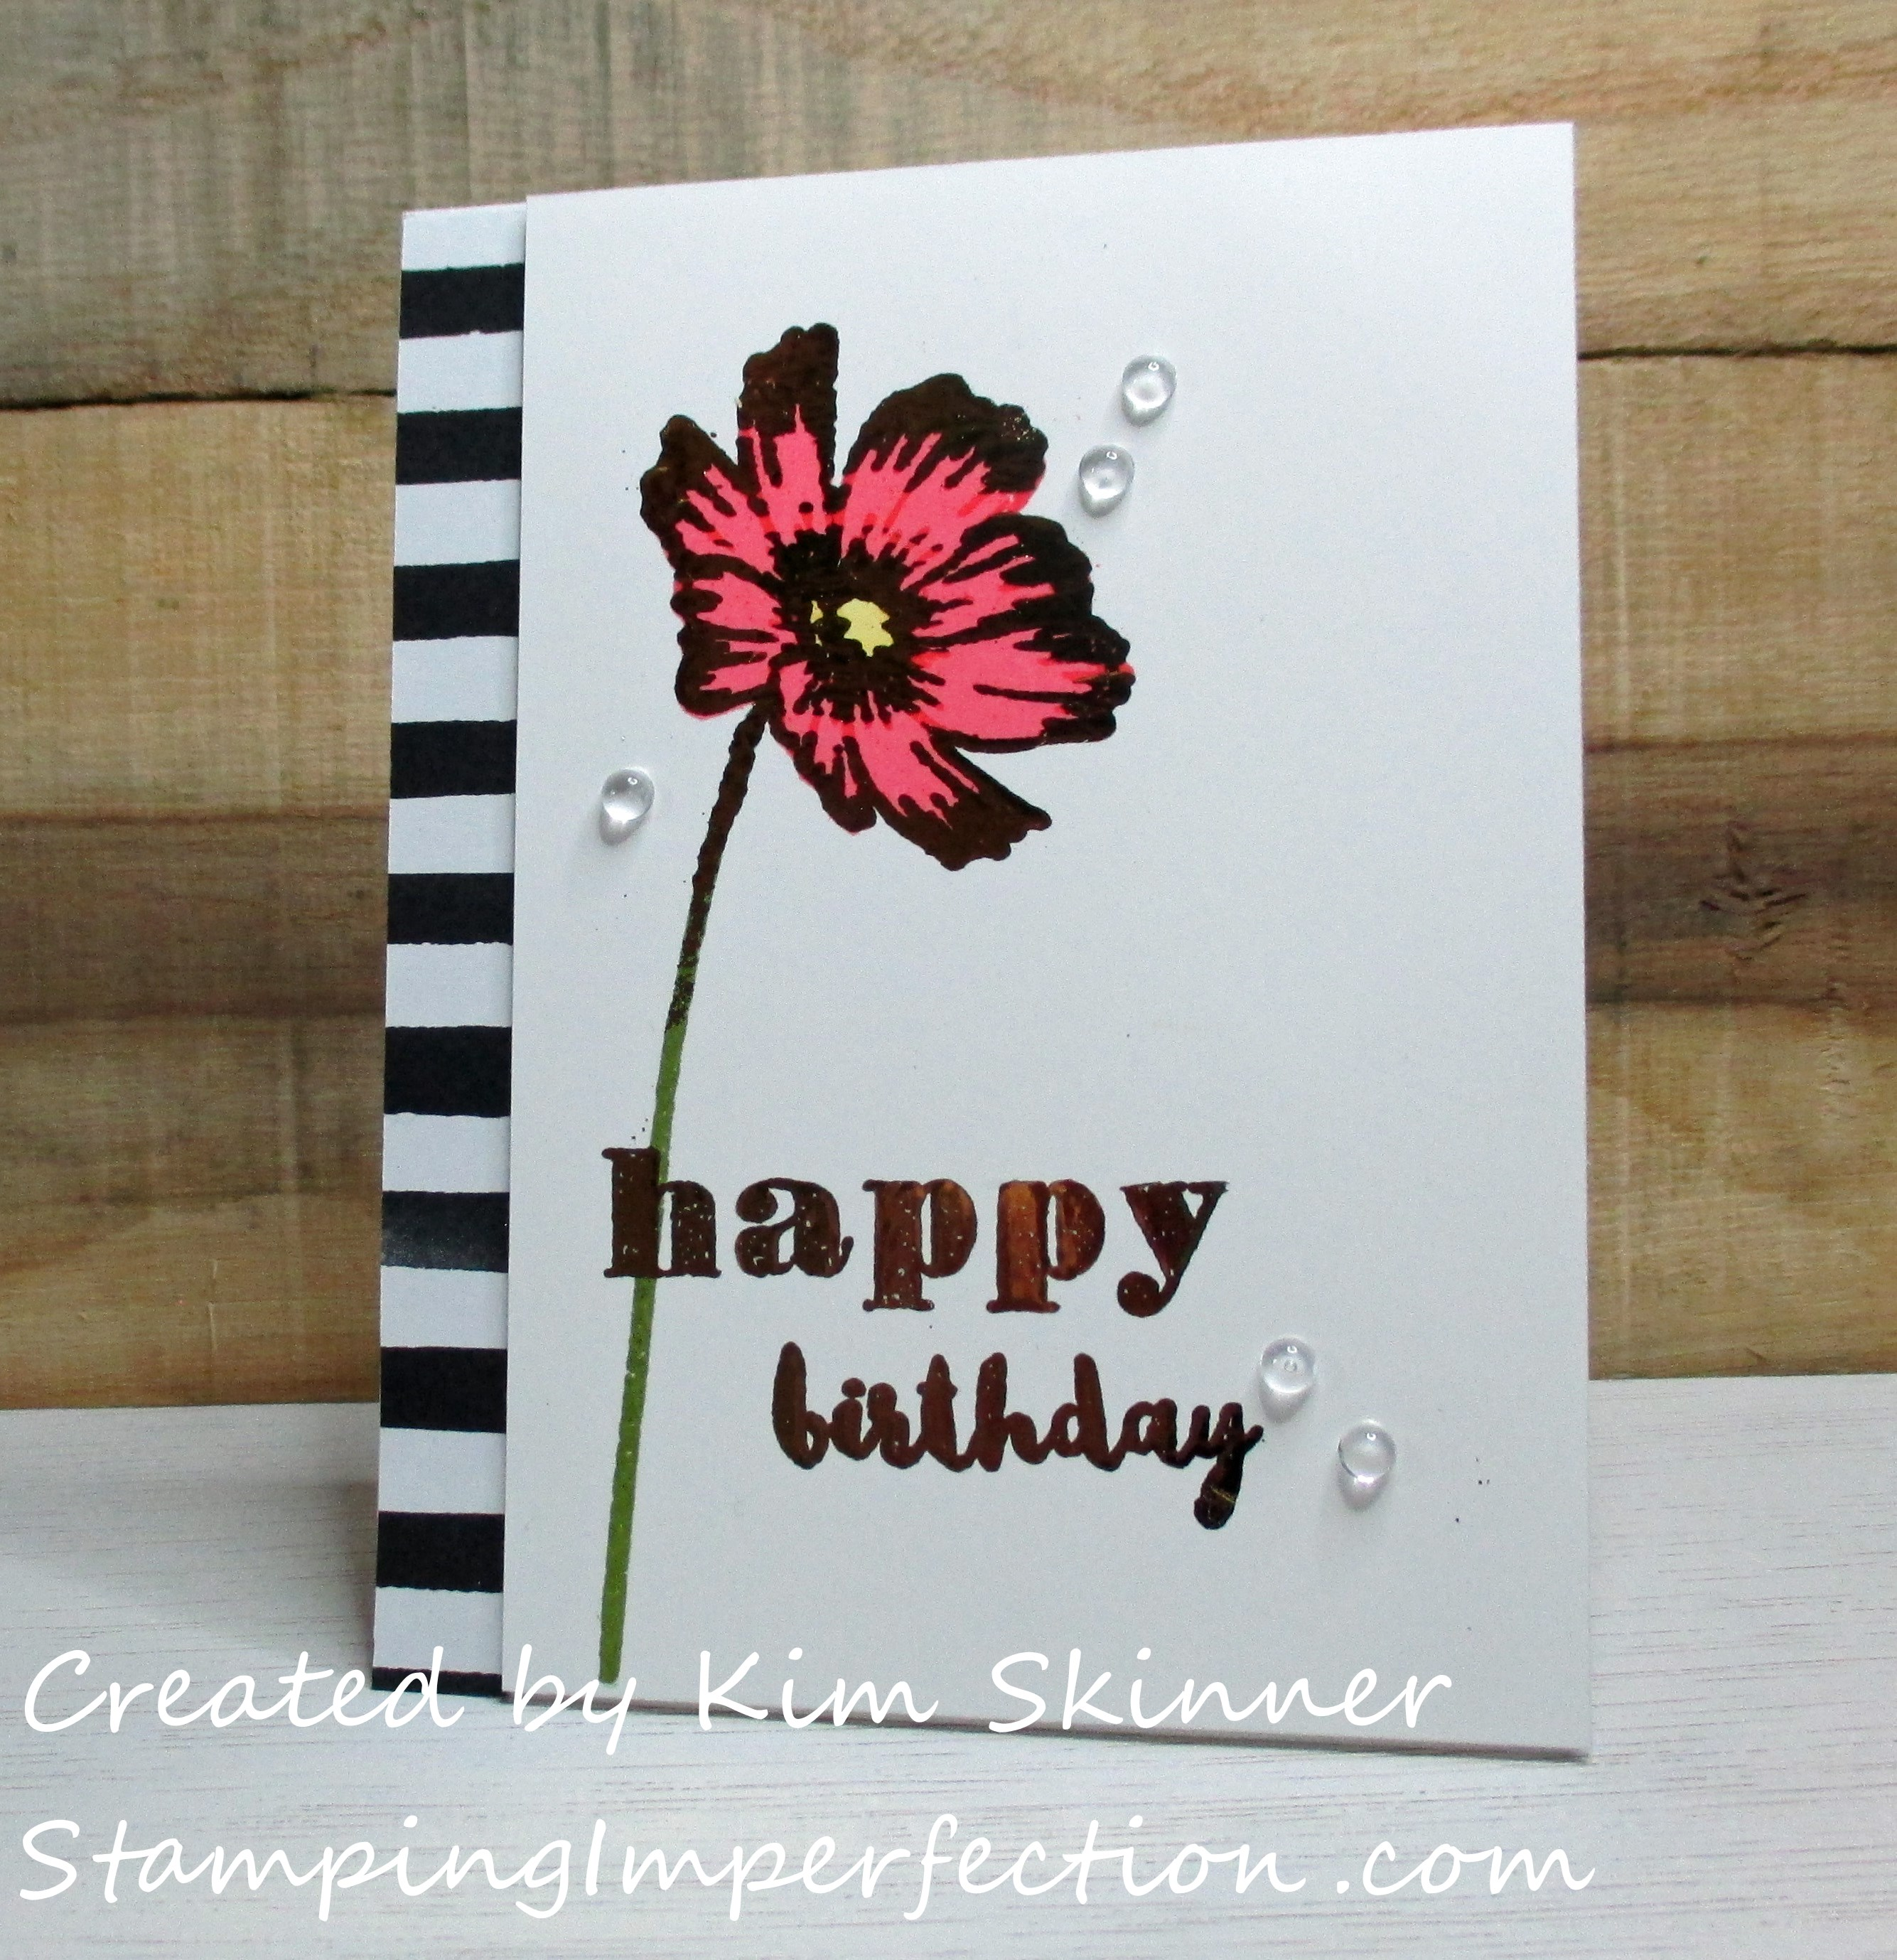 Stamping Imperfection Beyond Basic Backgrounds